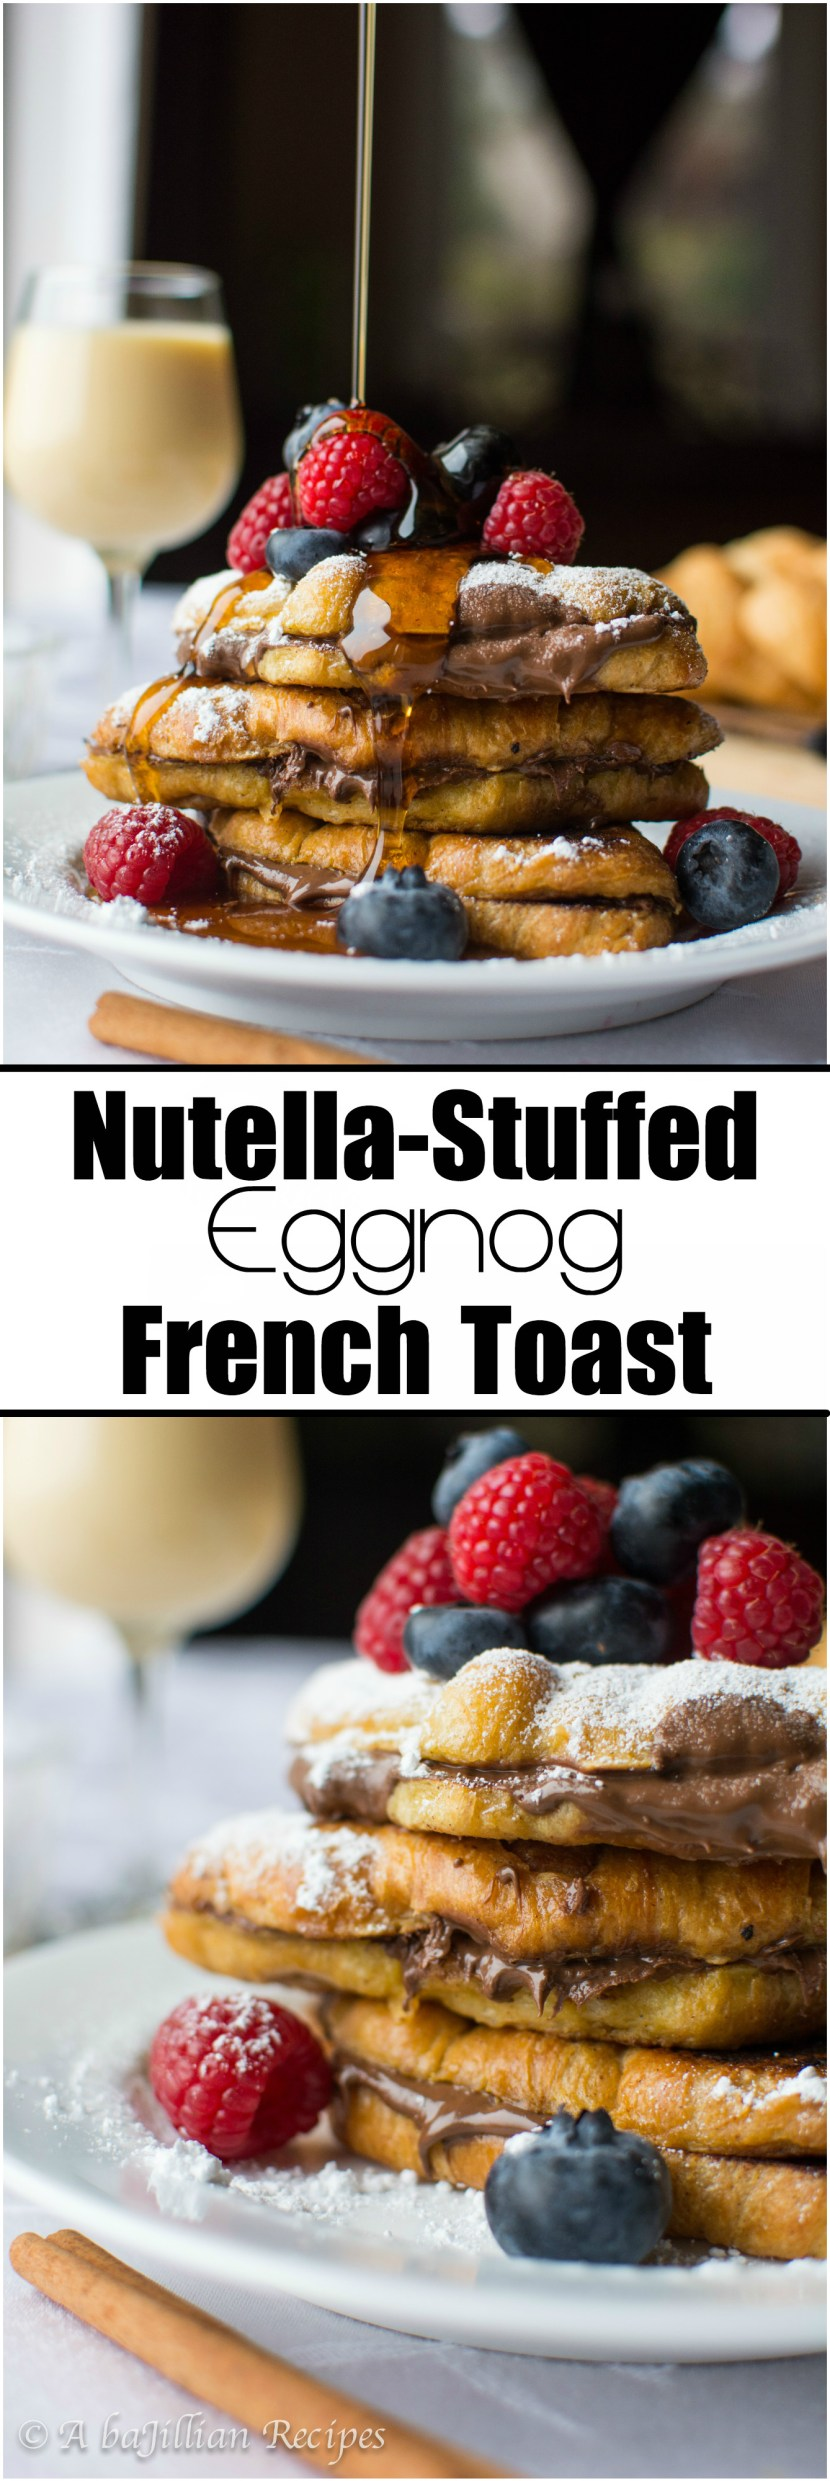 nutella-stuffed-eggnog-french-toast-abajillianrecipes-com1